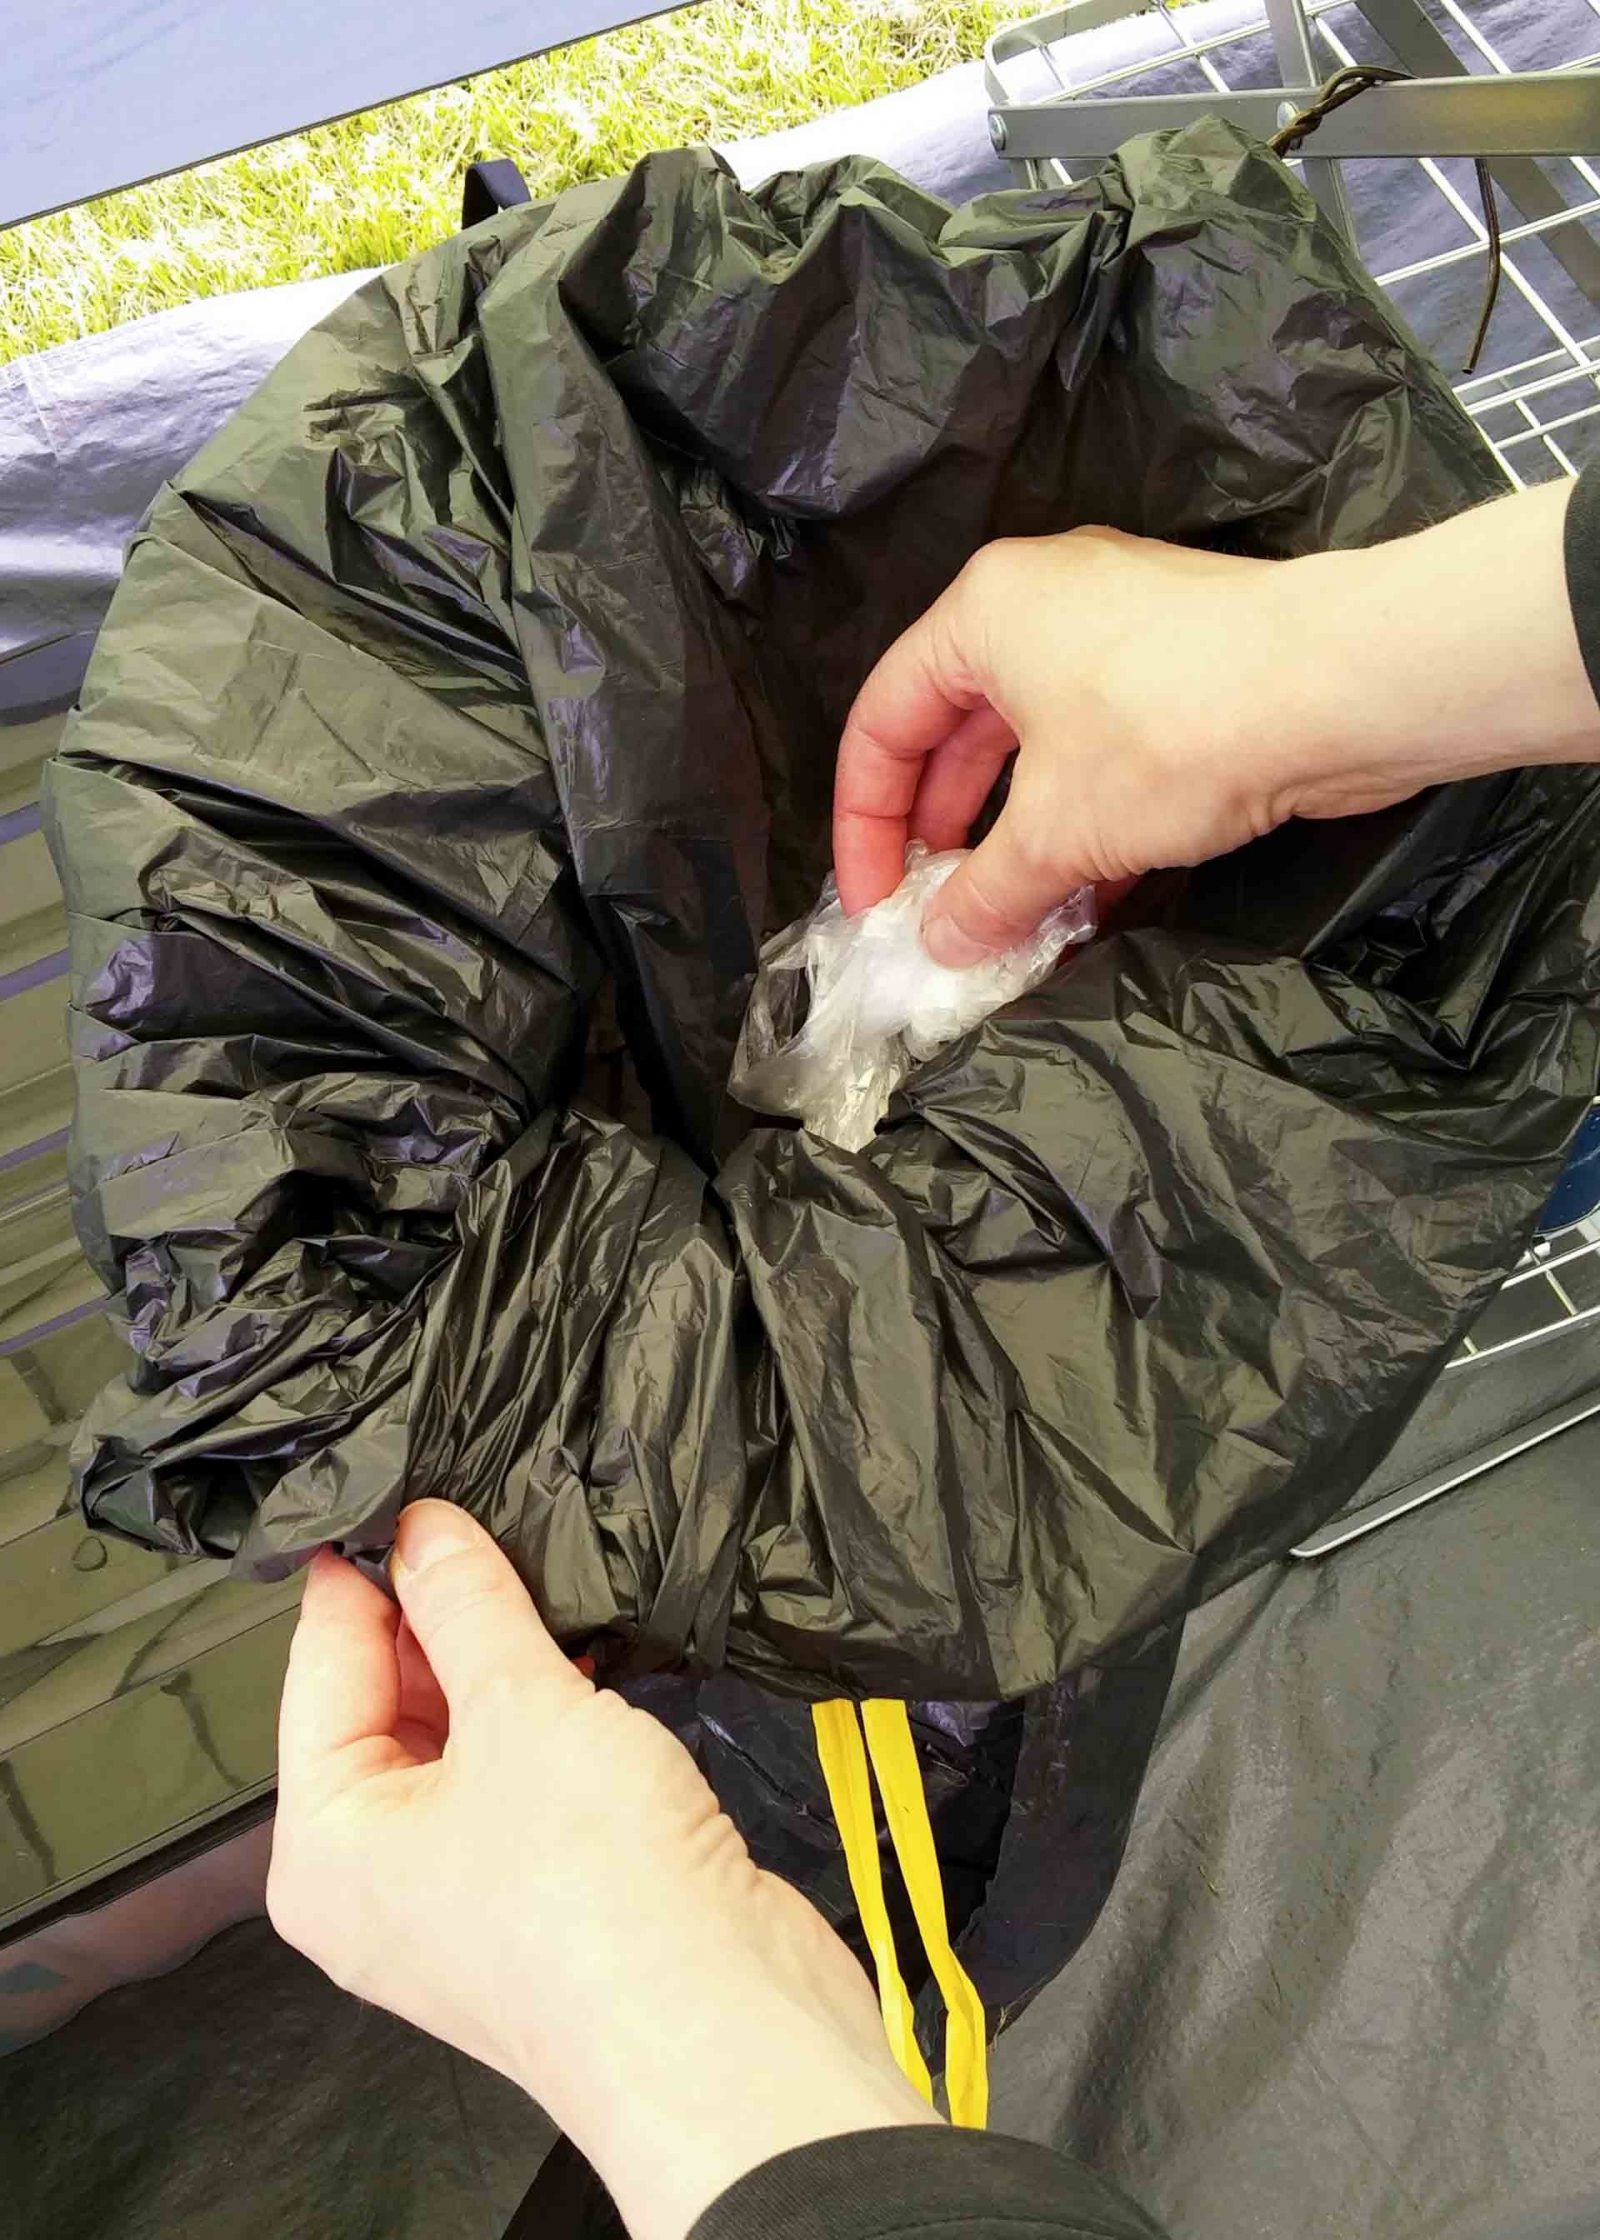 Make this simple folding waste bin for your camp kitchen. When you're camping you need an easy compact way to deal with trash. Throw away your rubbish and keep out the wasps. Easy and and compact camping idea on Falcondale Life blog.